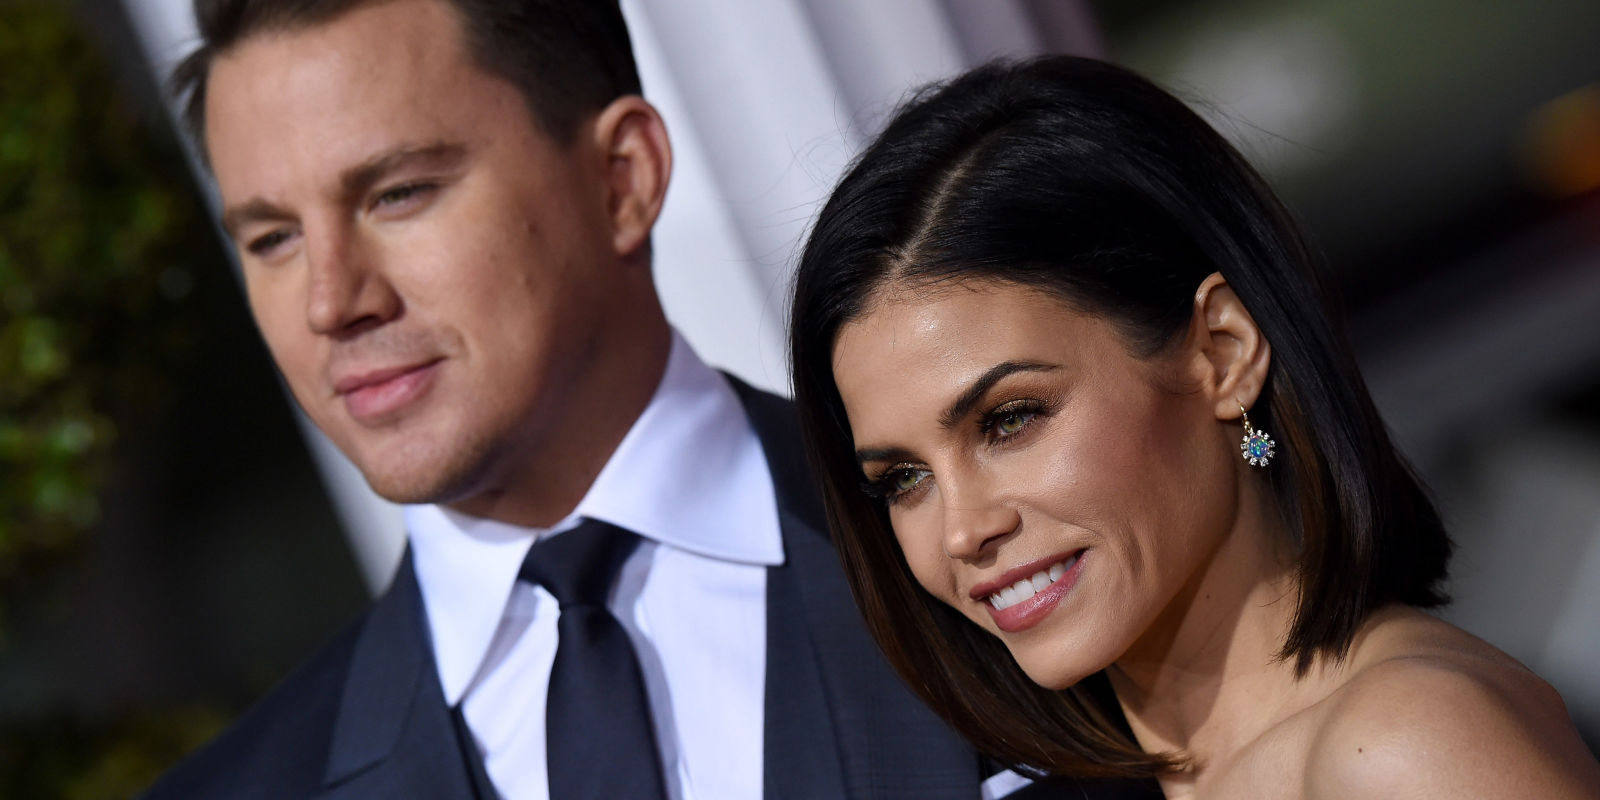 Channing Tatum And Jenna Dewan-Tatum's Daughter Just Gave Them The Most Creepy Makeover